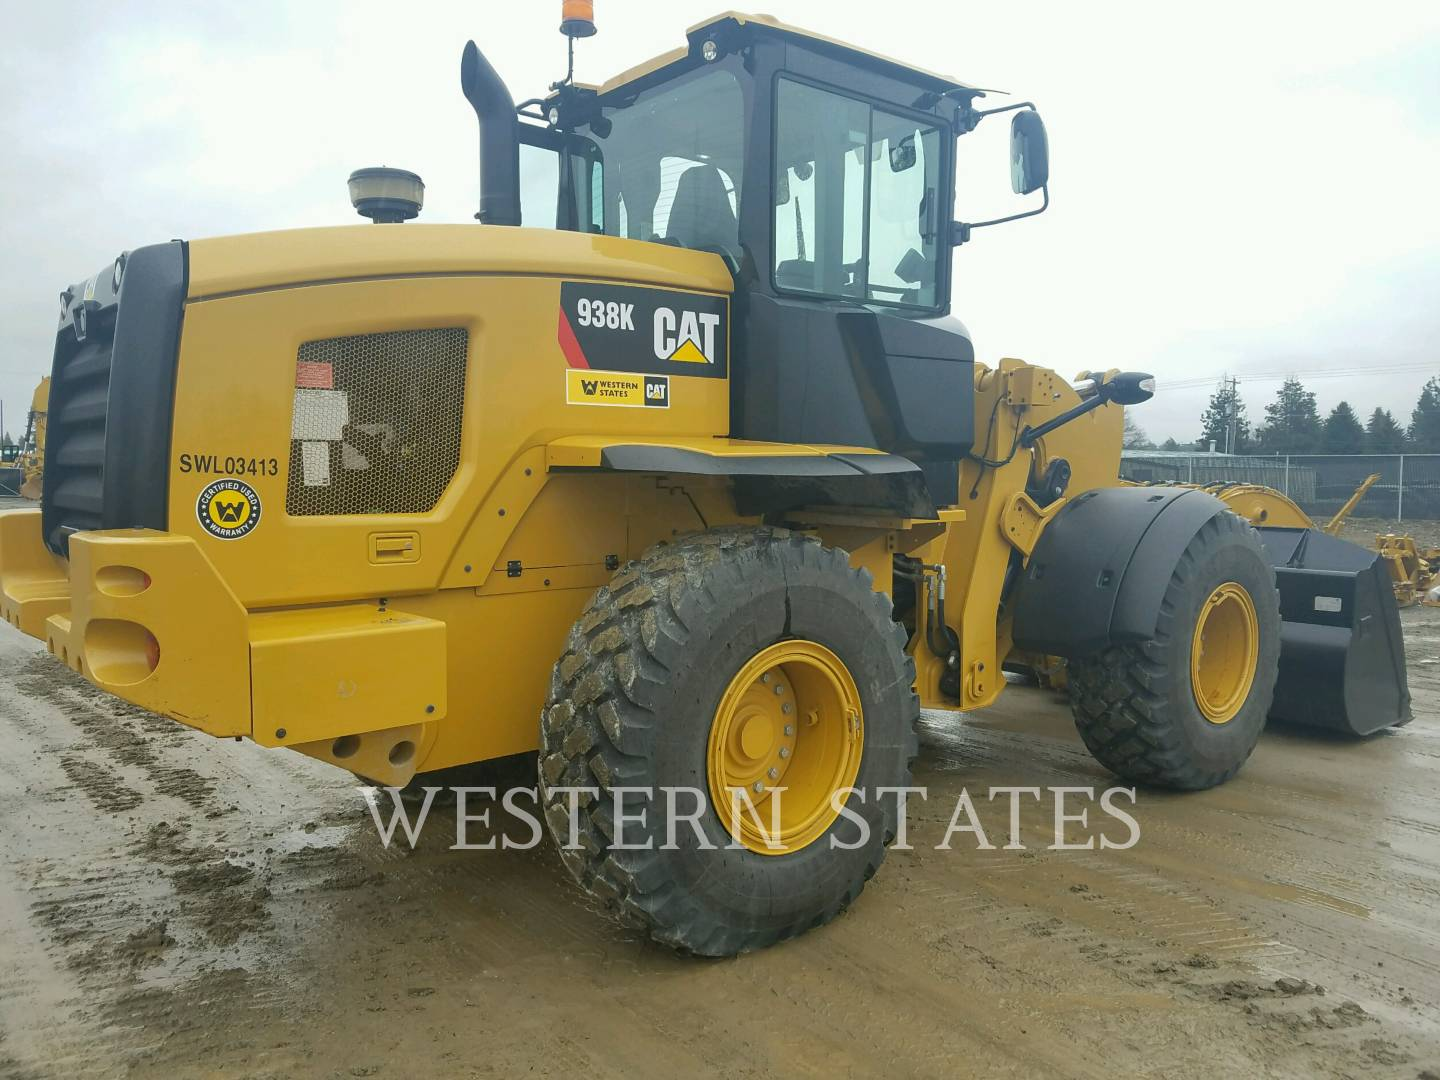 2014 CATERPILLAR 938K image3